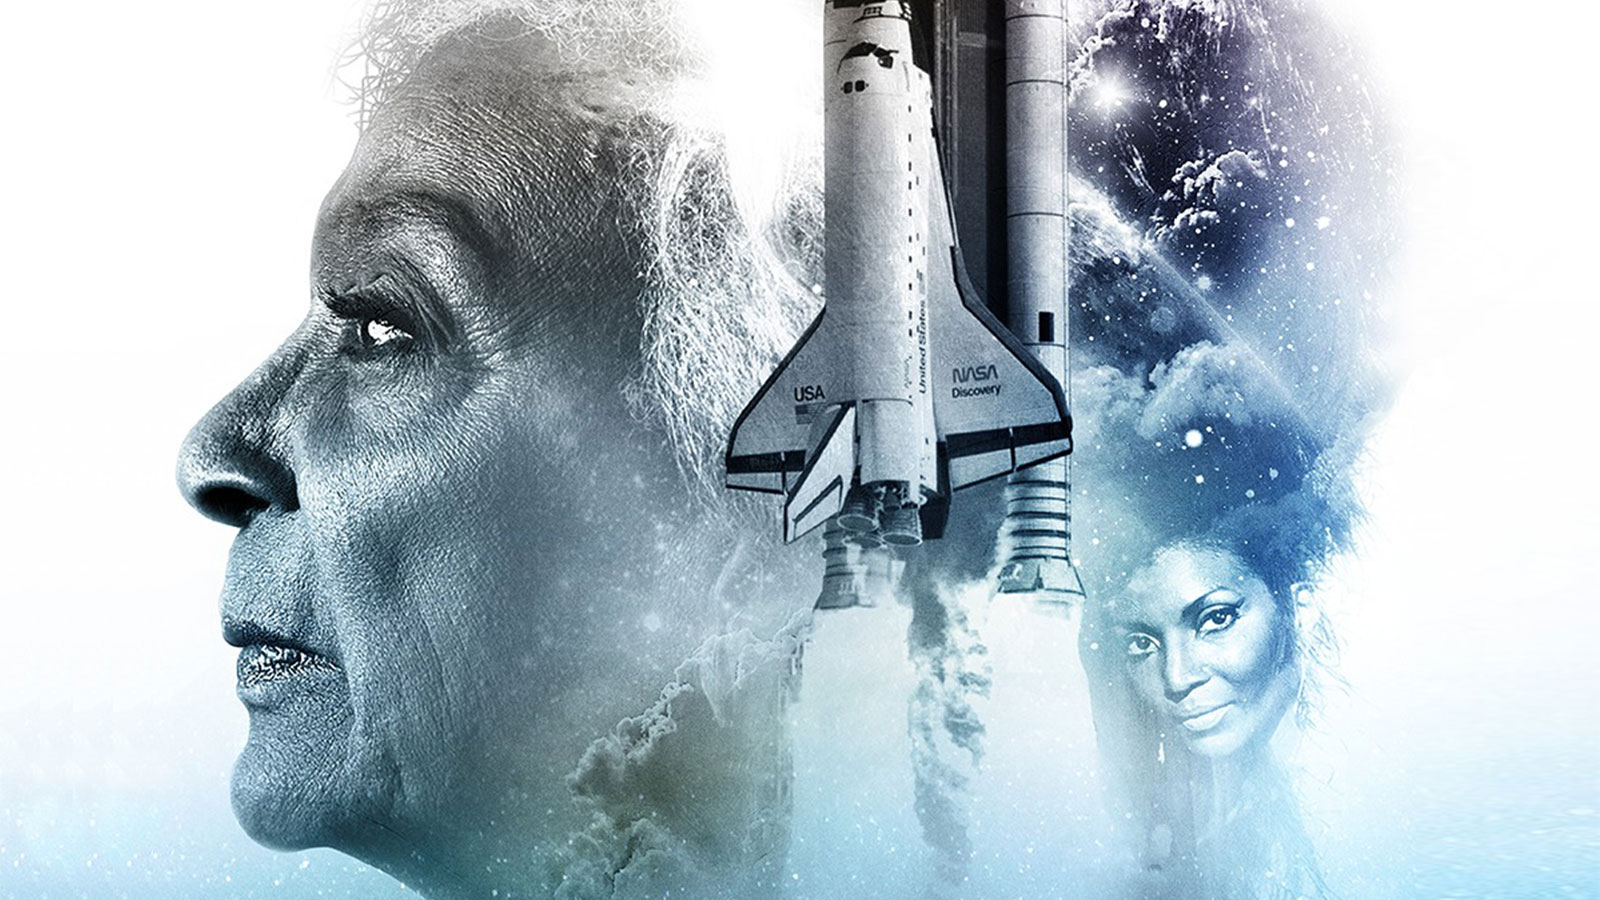 'Woman In Motion' Review: A Wonderful Tribute To Nichelle Nichols' Immense Impact On NASA And The Space Shuttle Program